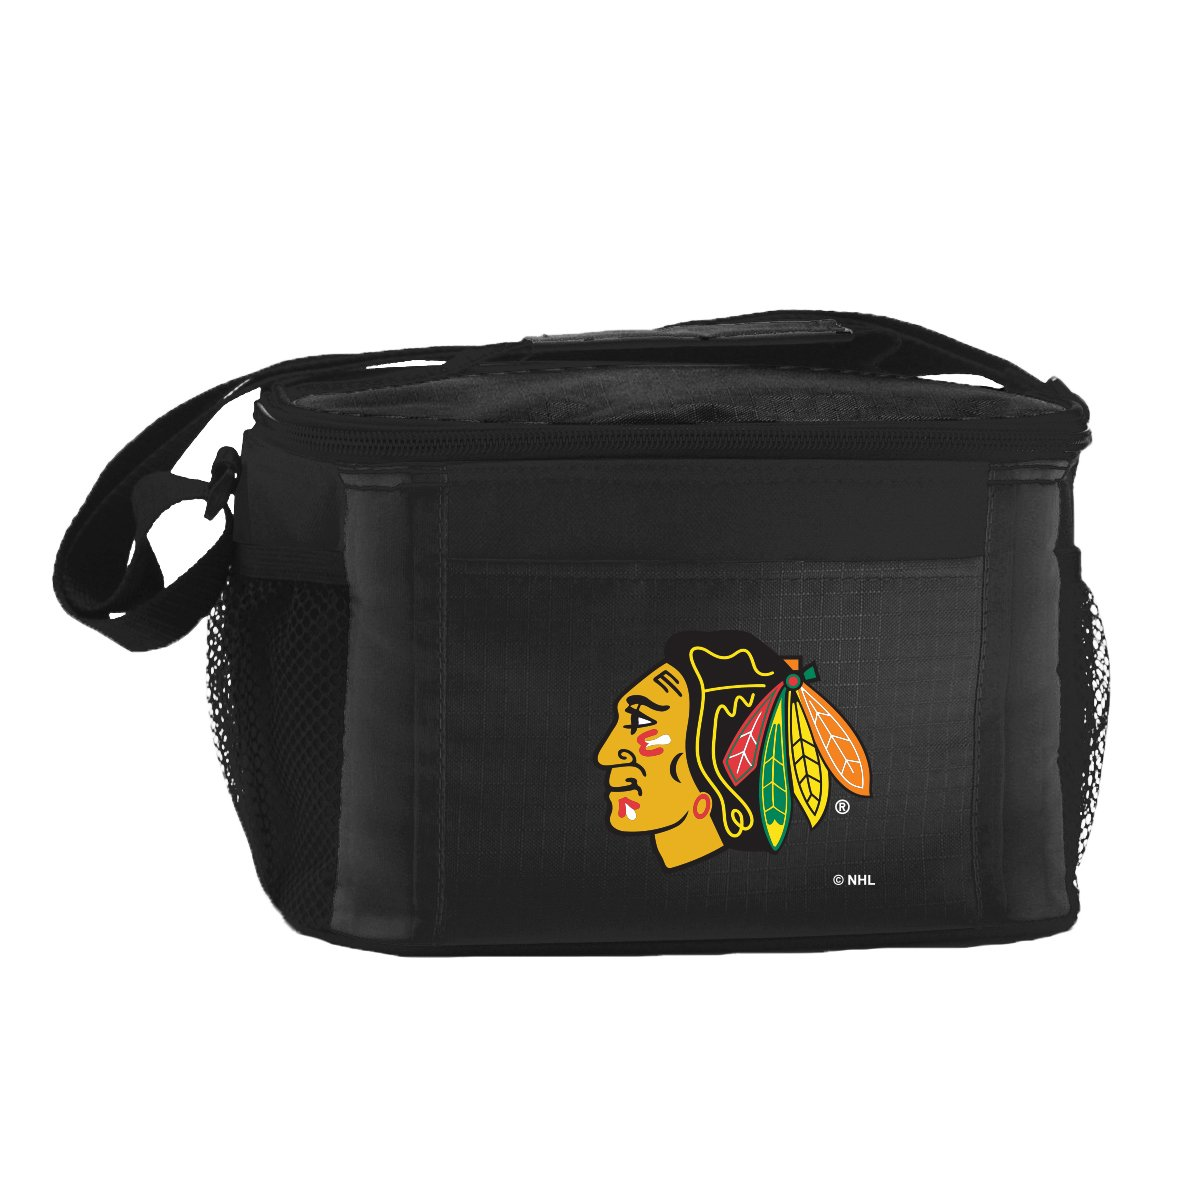 NHL Chicago Blackhawks Insulated Lunch Cooler Bag with Zipper Closure, Black